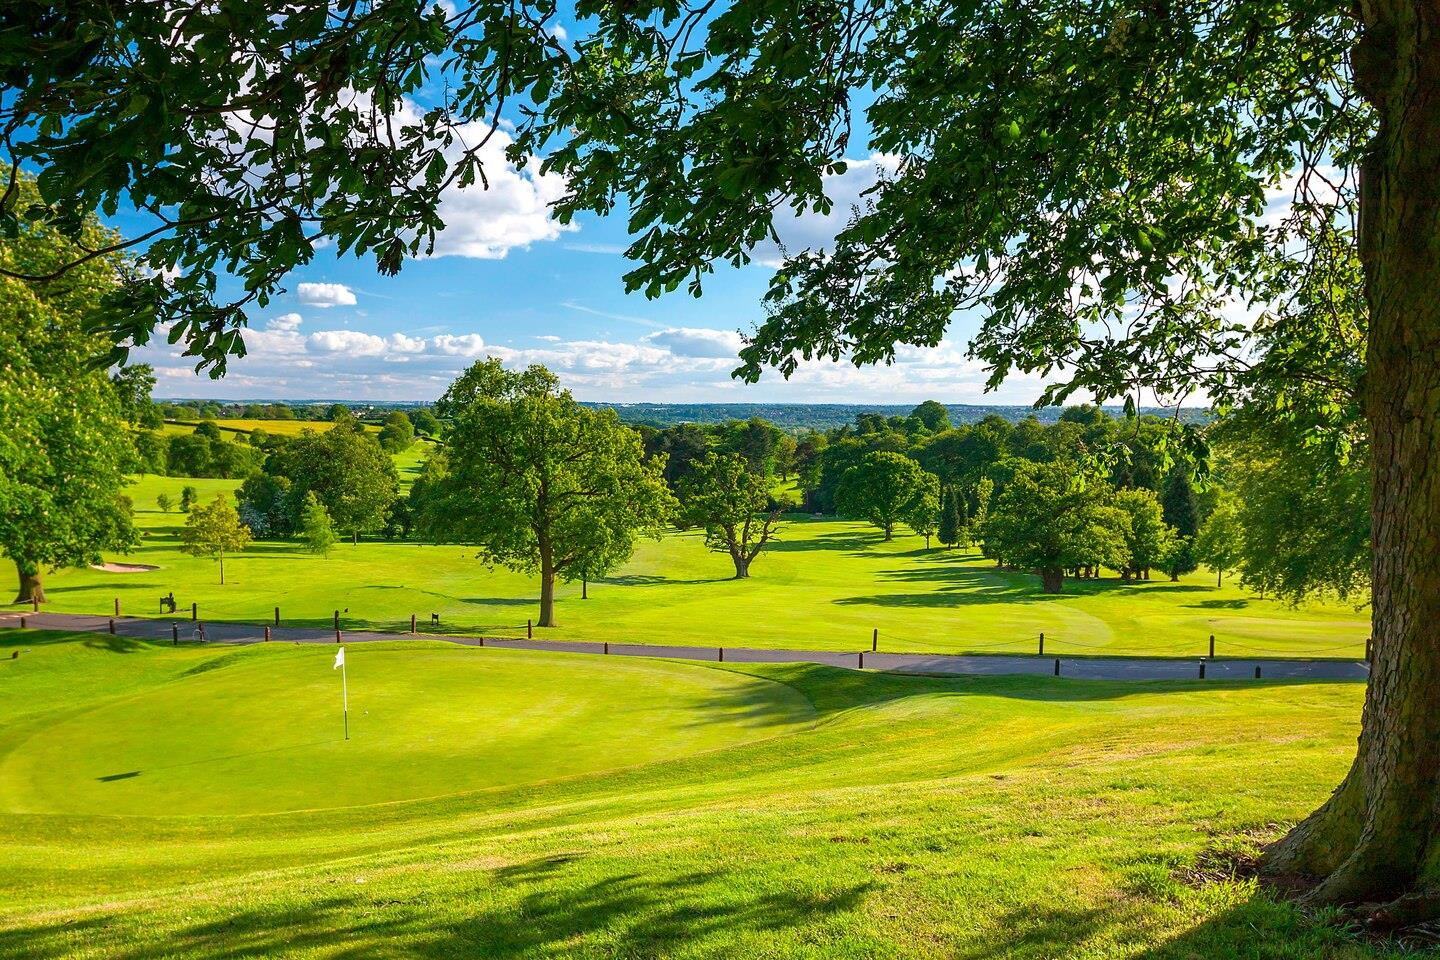 Breadsall Priory Marriott Hotel & Country Club 4* - 1 Night Dinner Bed & Breakfast, 2 Rounds